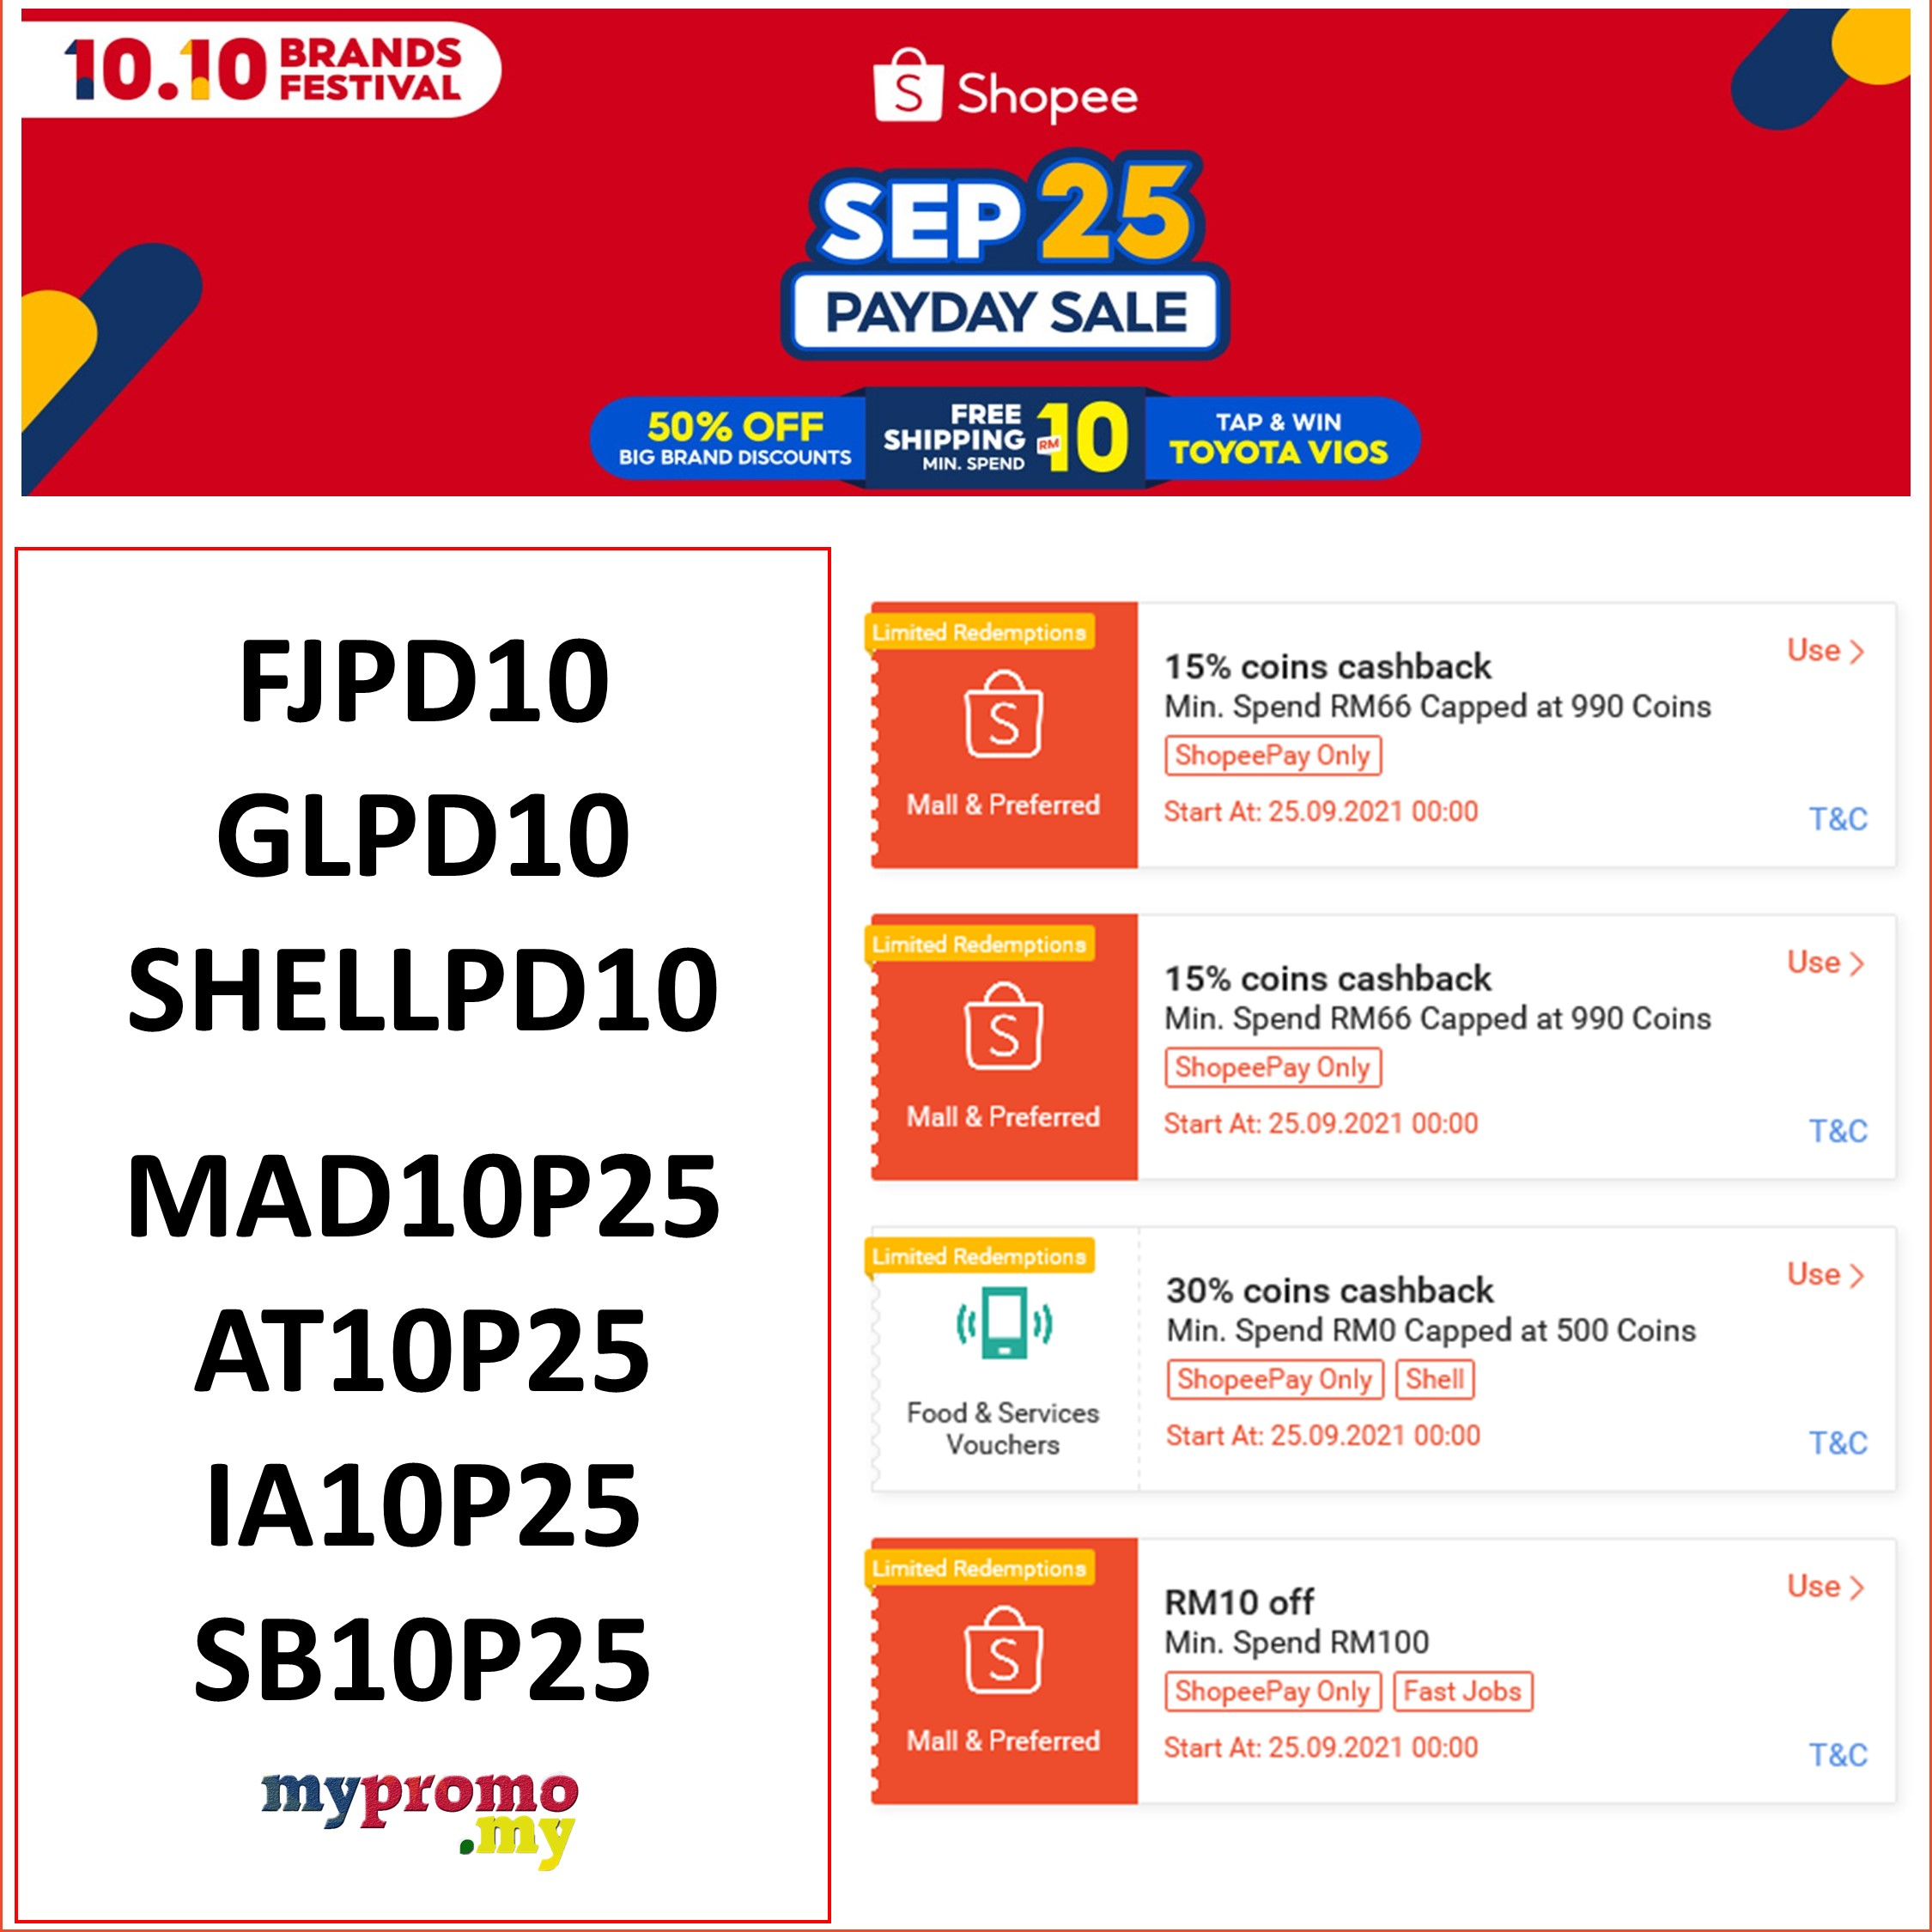 Shopee Payday